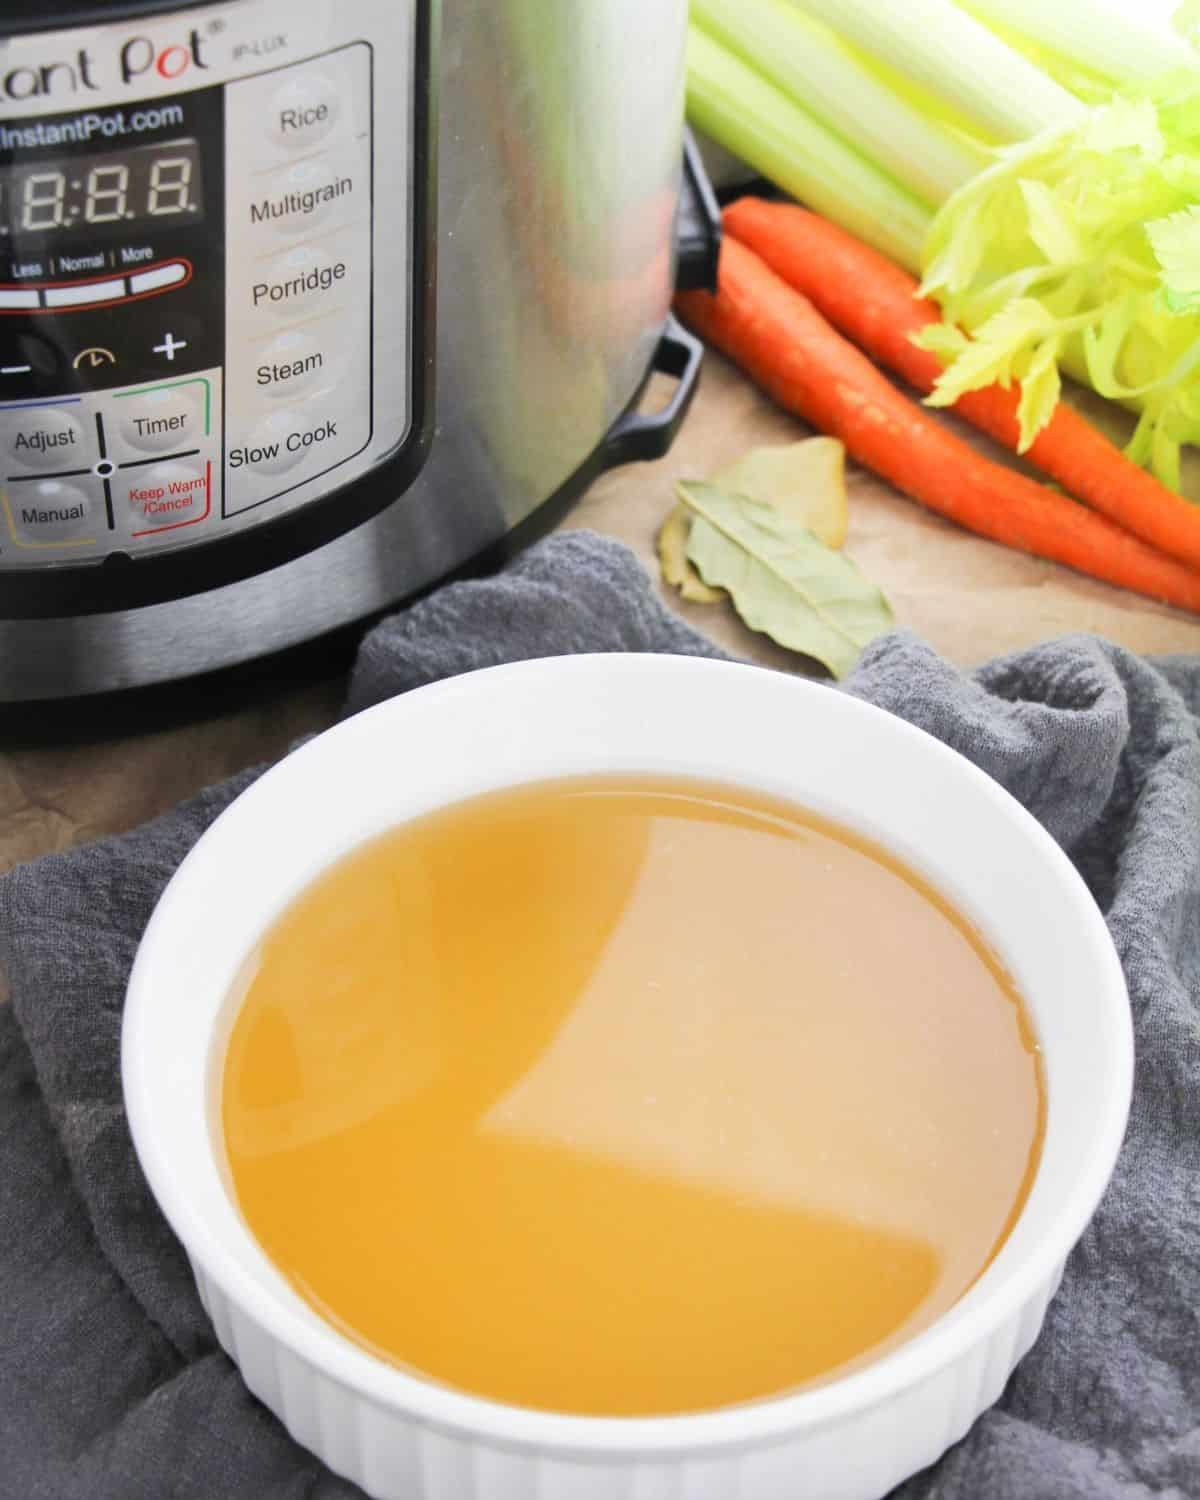 turkey stock made in the pressure cooker in a bowl surrounded by veggies and an Instant Pot.